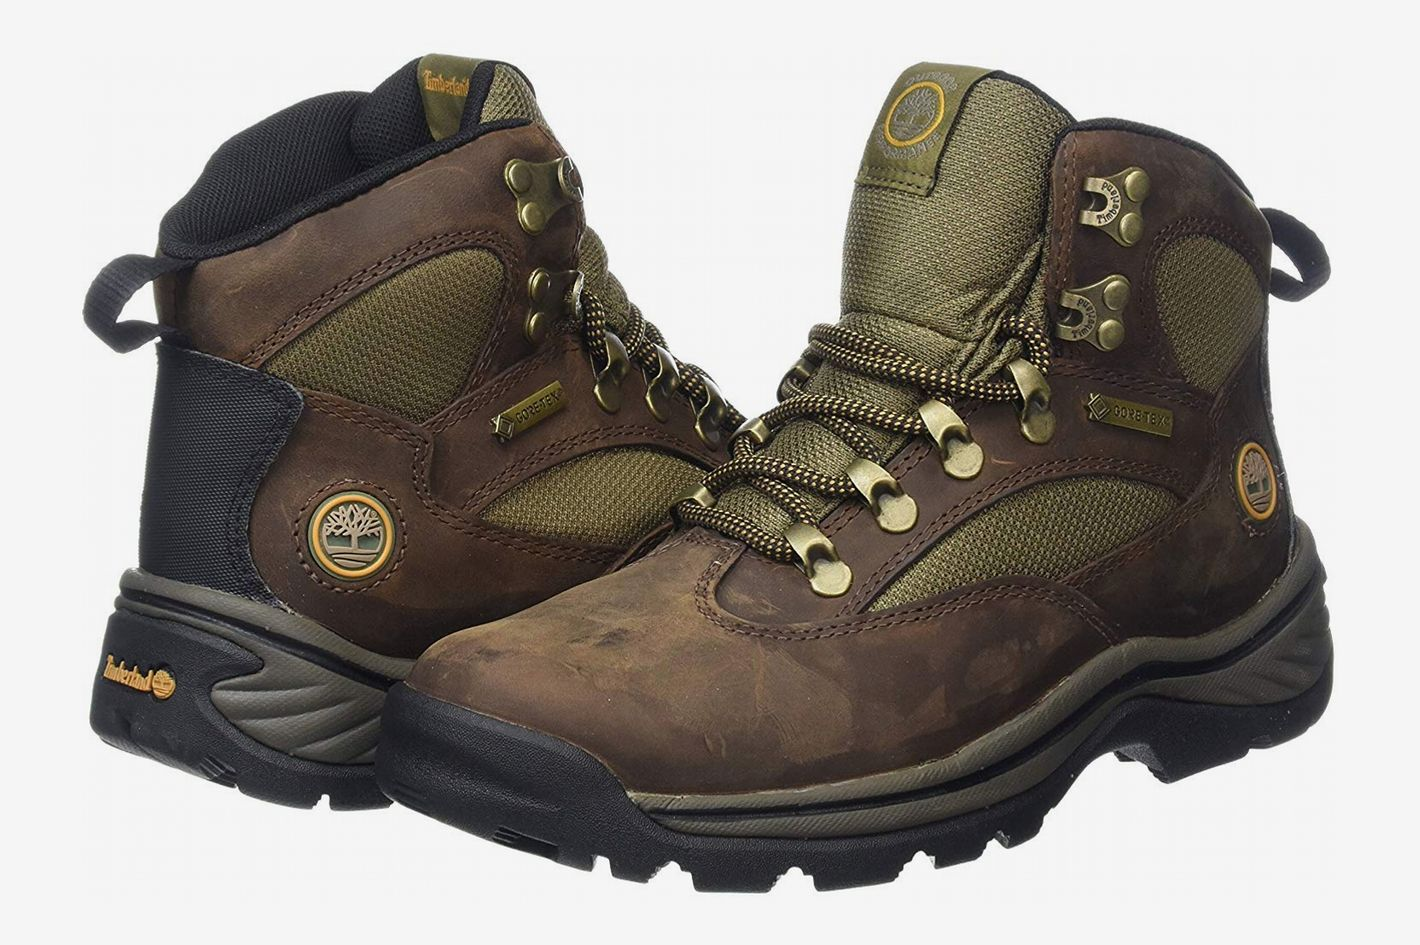 fbd56200c 21 Best Women's Hiking Boots to Buy 2019